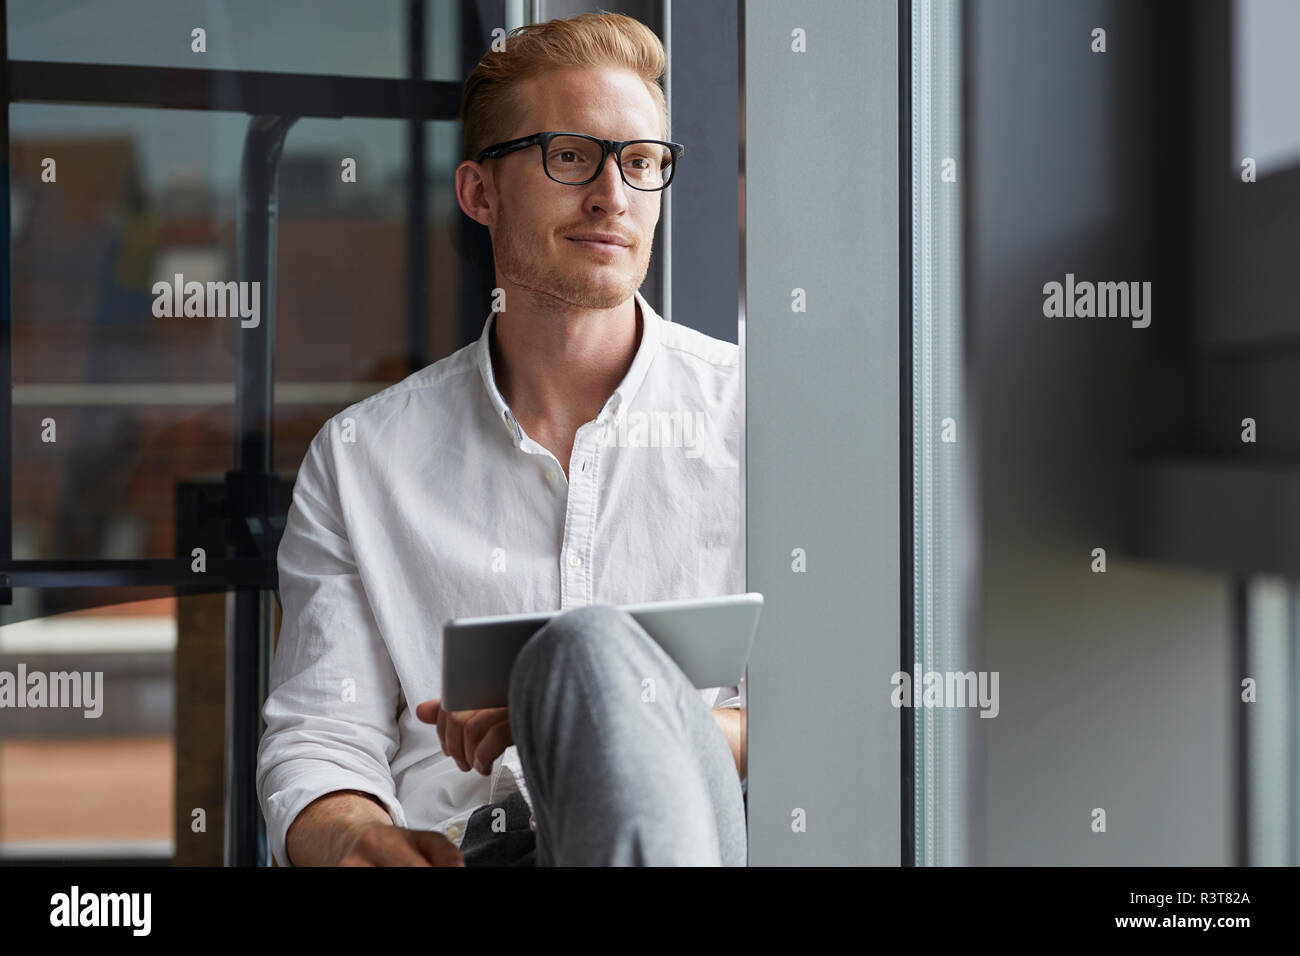 Smiling businessman sitting on windowsill with tablet - Stock Image